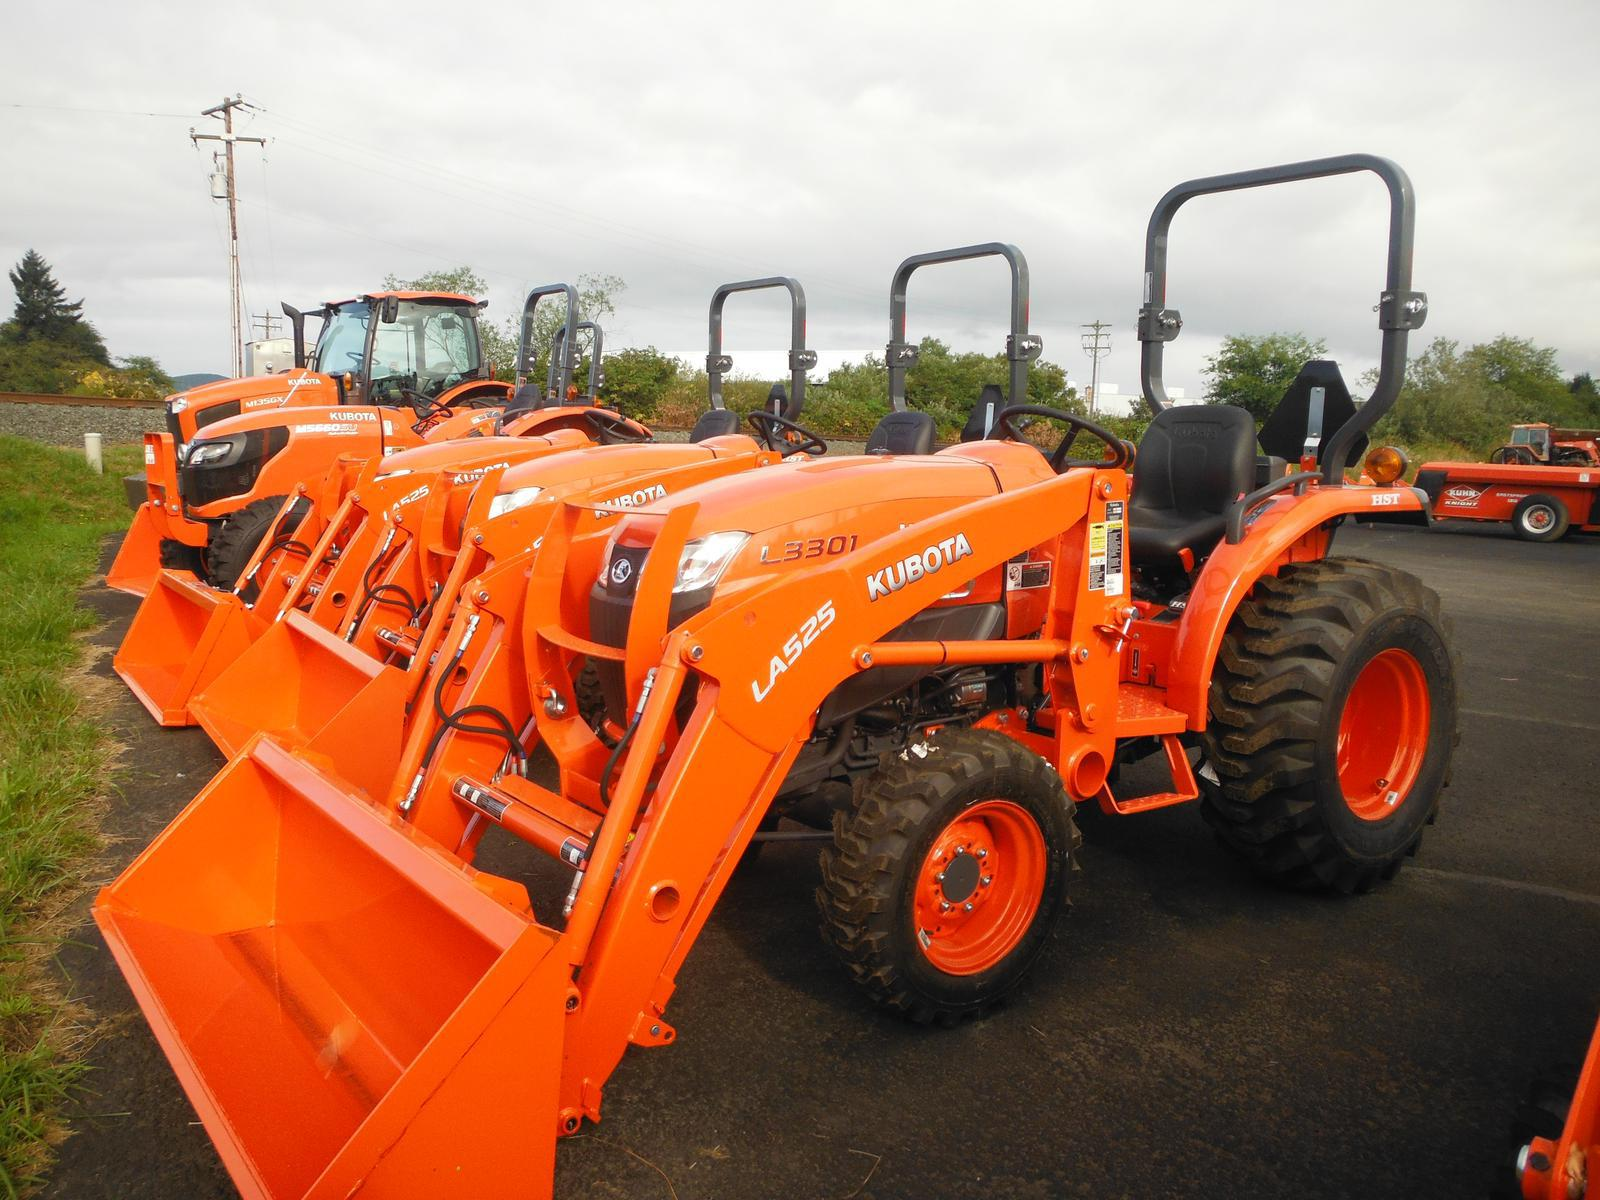 Kubota L3301 HST for sale in Tillamook, OR  Boyd's Implement Service